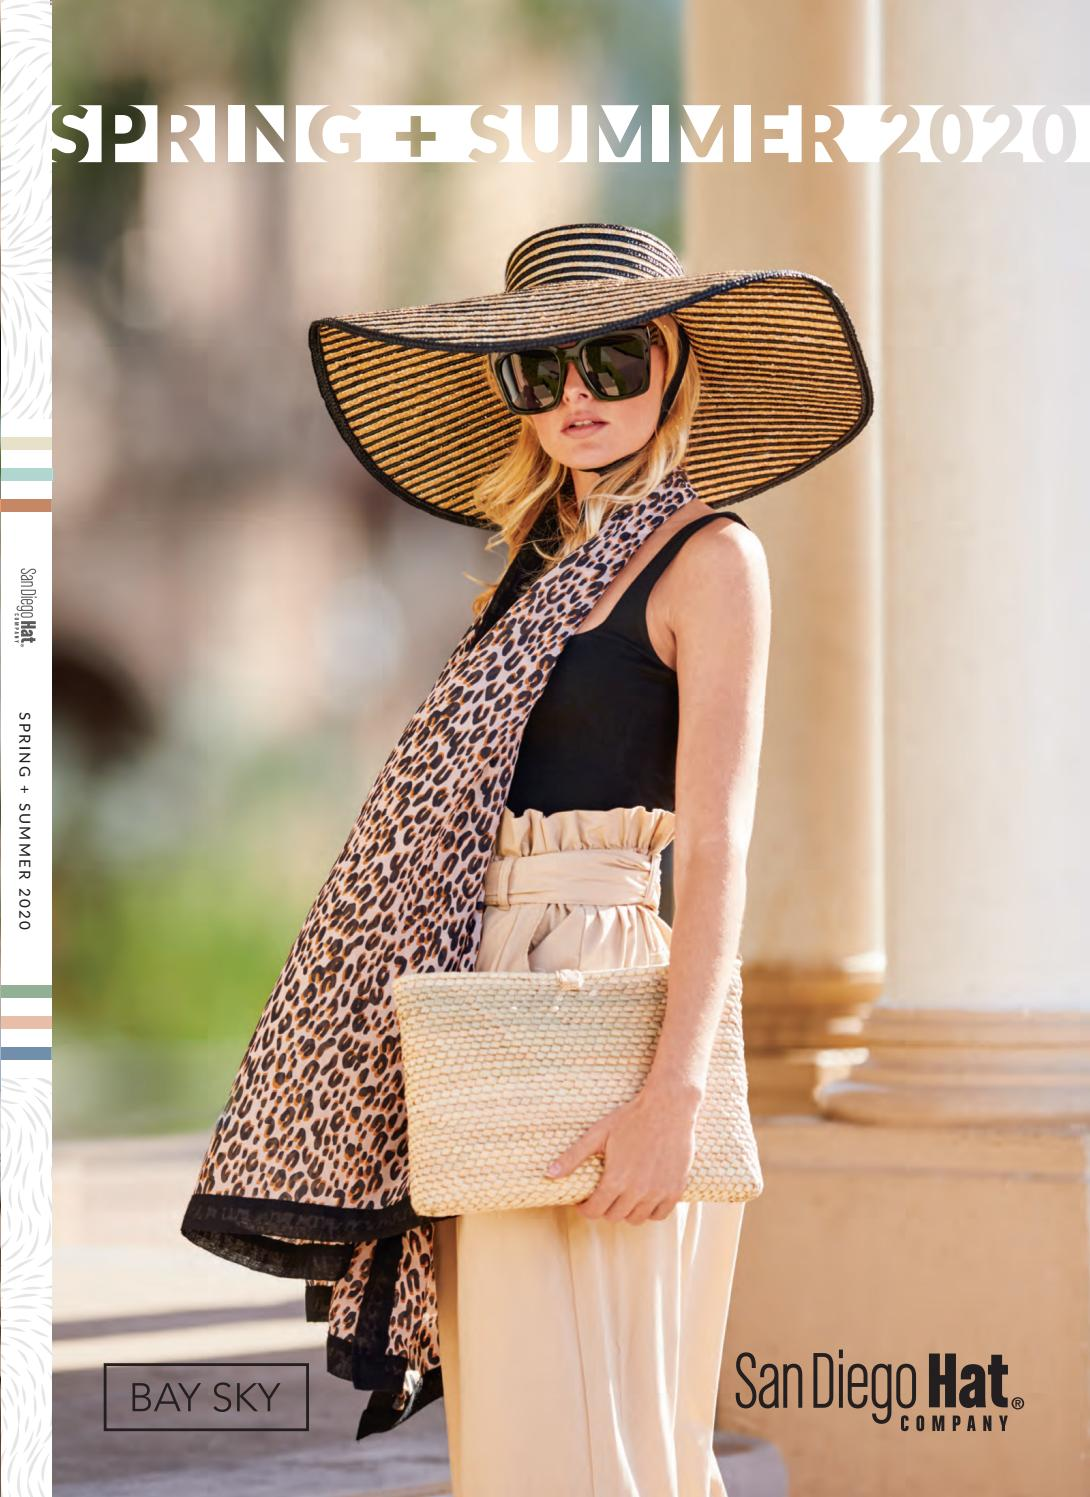 Authentic Large African Unisex Raffia Straw sun Hat with adjustable or removable Leather chin strap